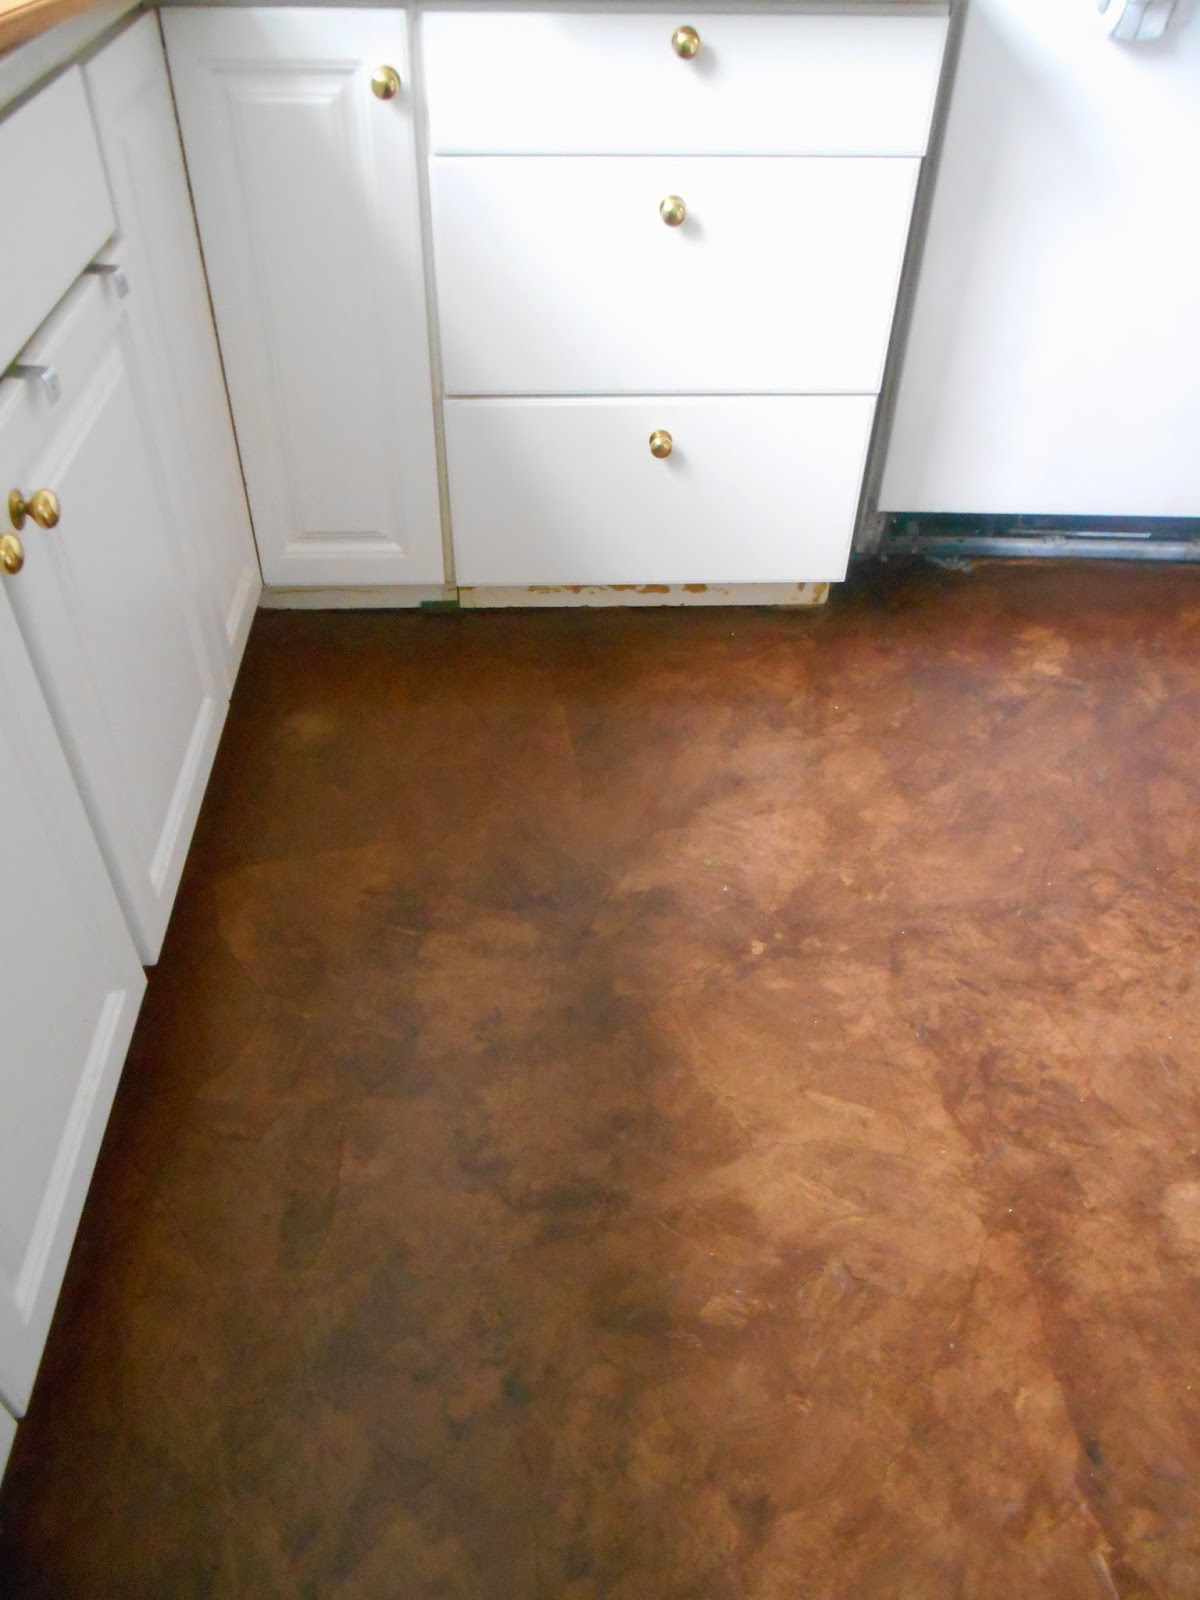 Living designs a paper bag floor over asbestos linoleum for Paint over vinyl floors